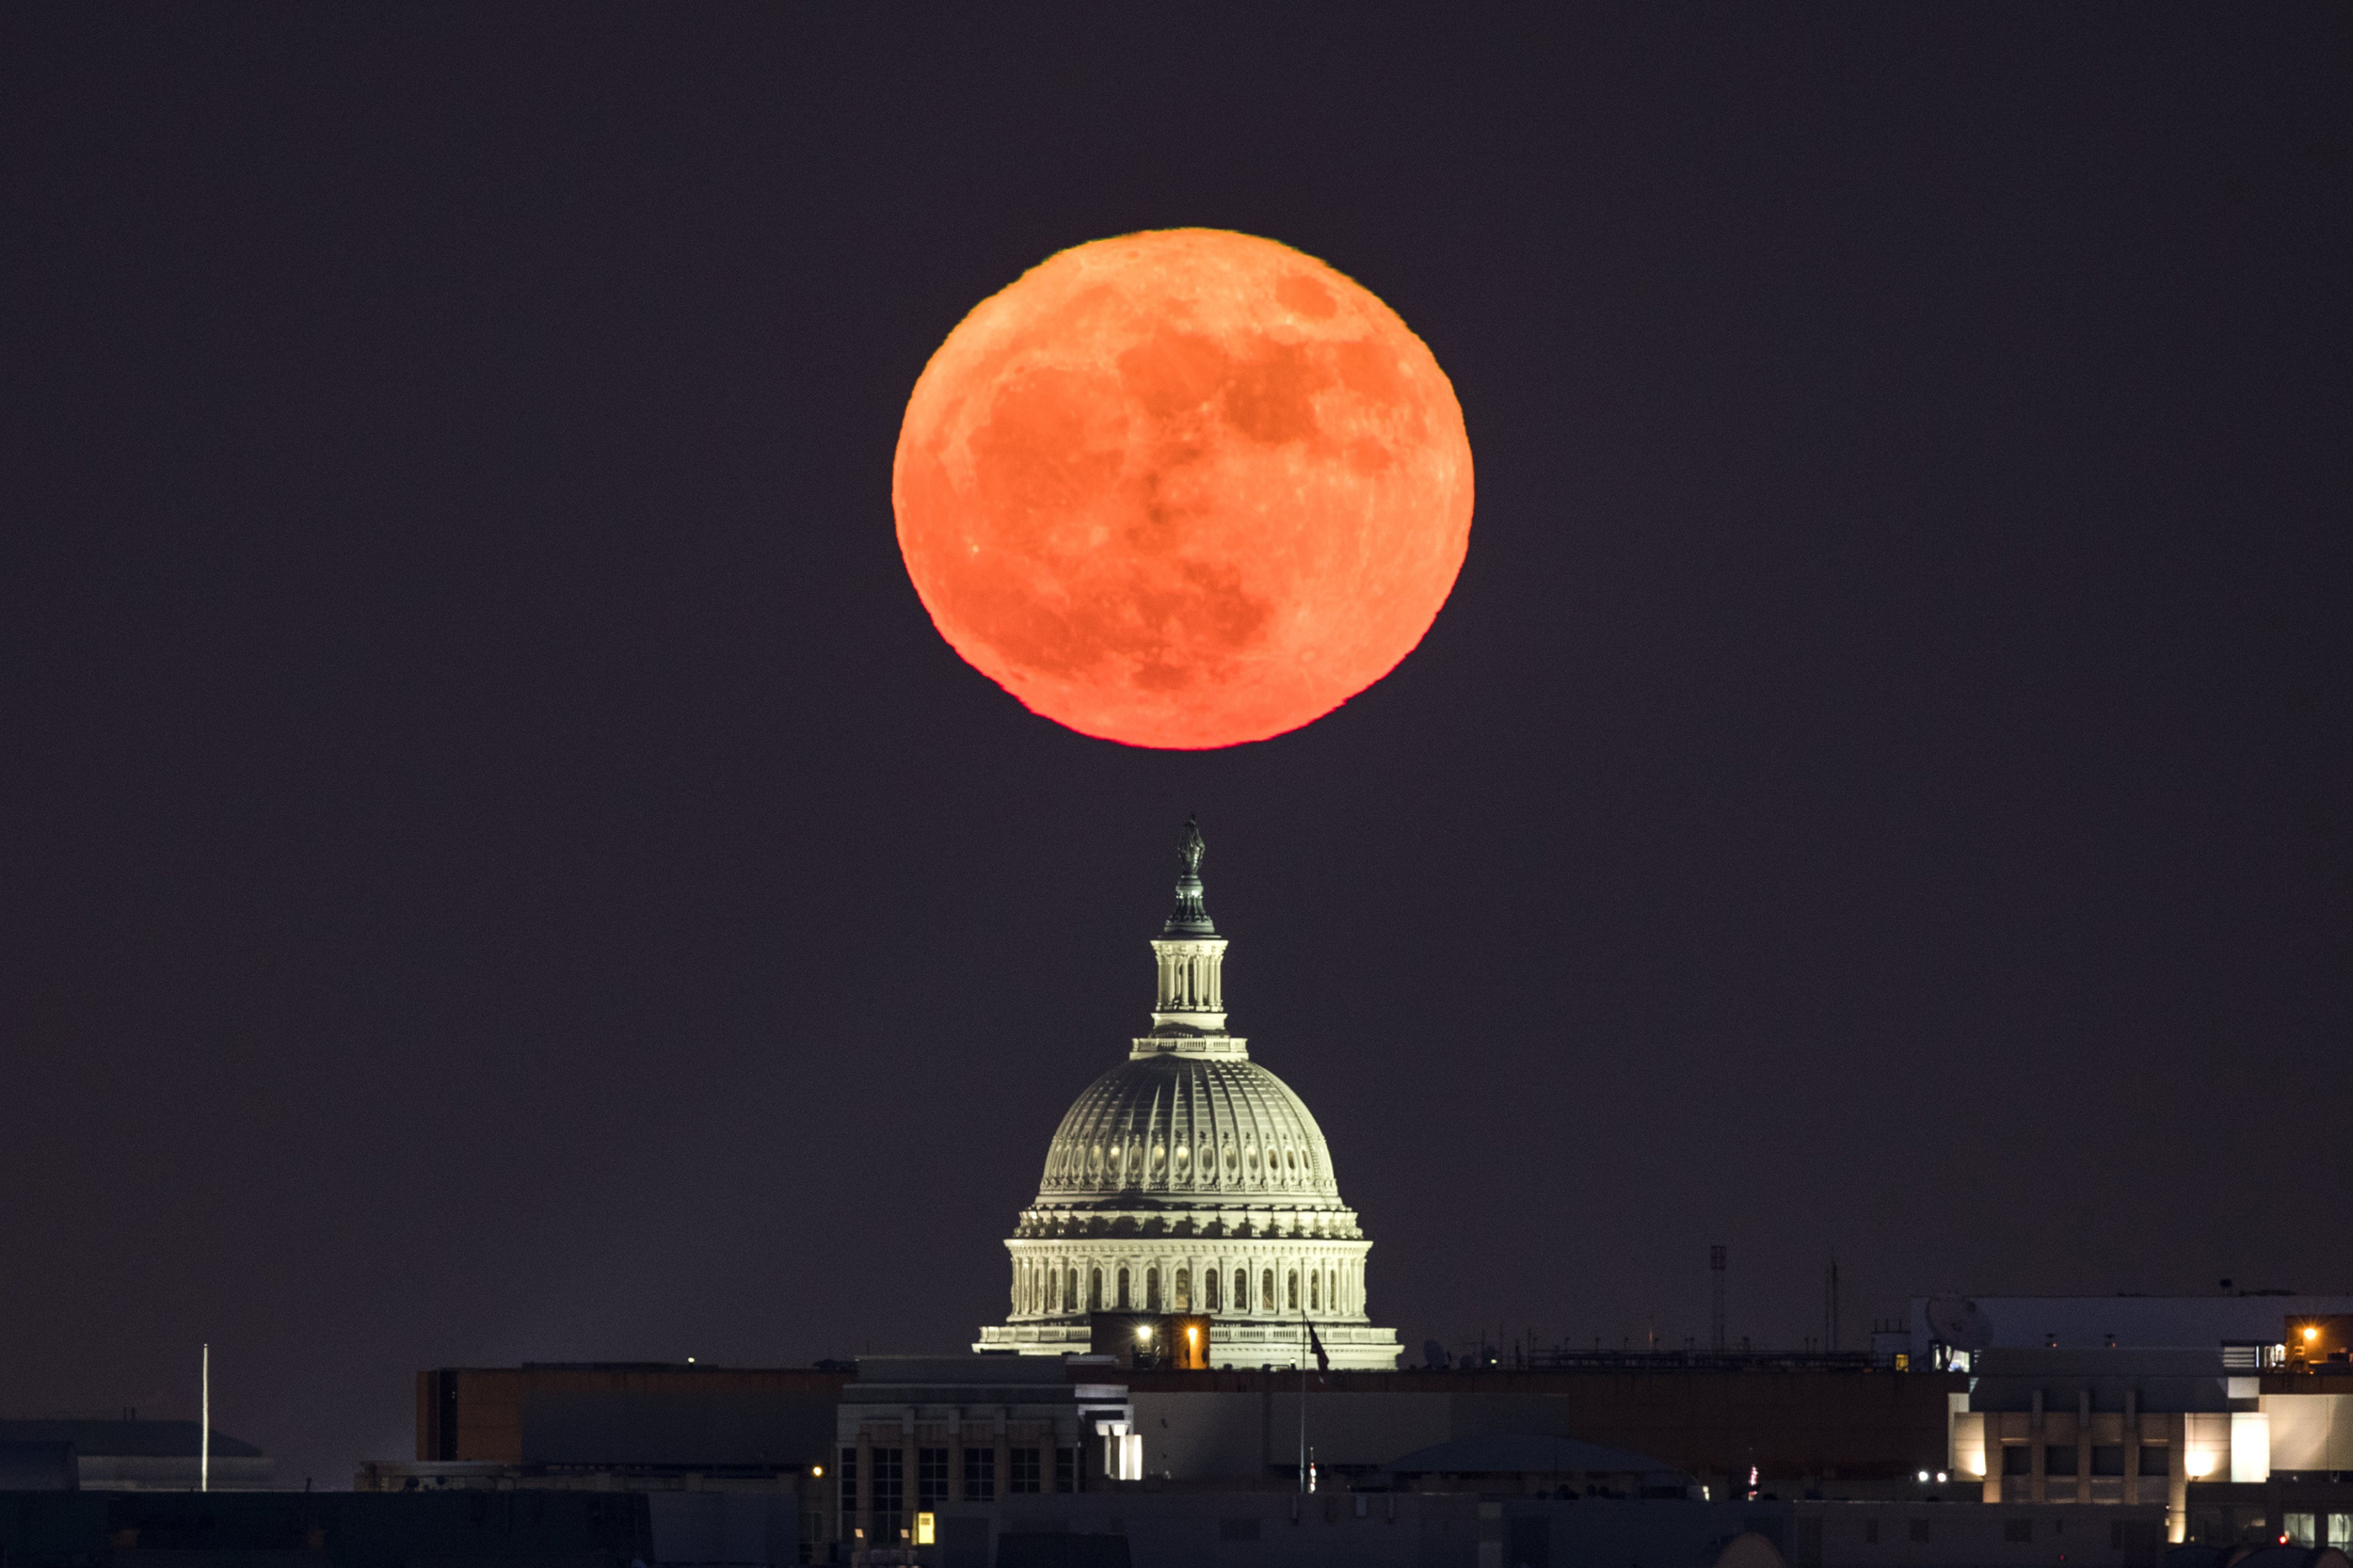 Supermoon will be visible for the only time in 2017 - NBC News